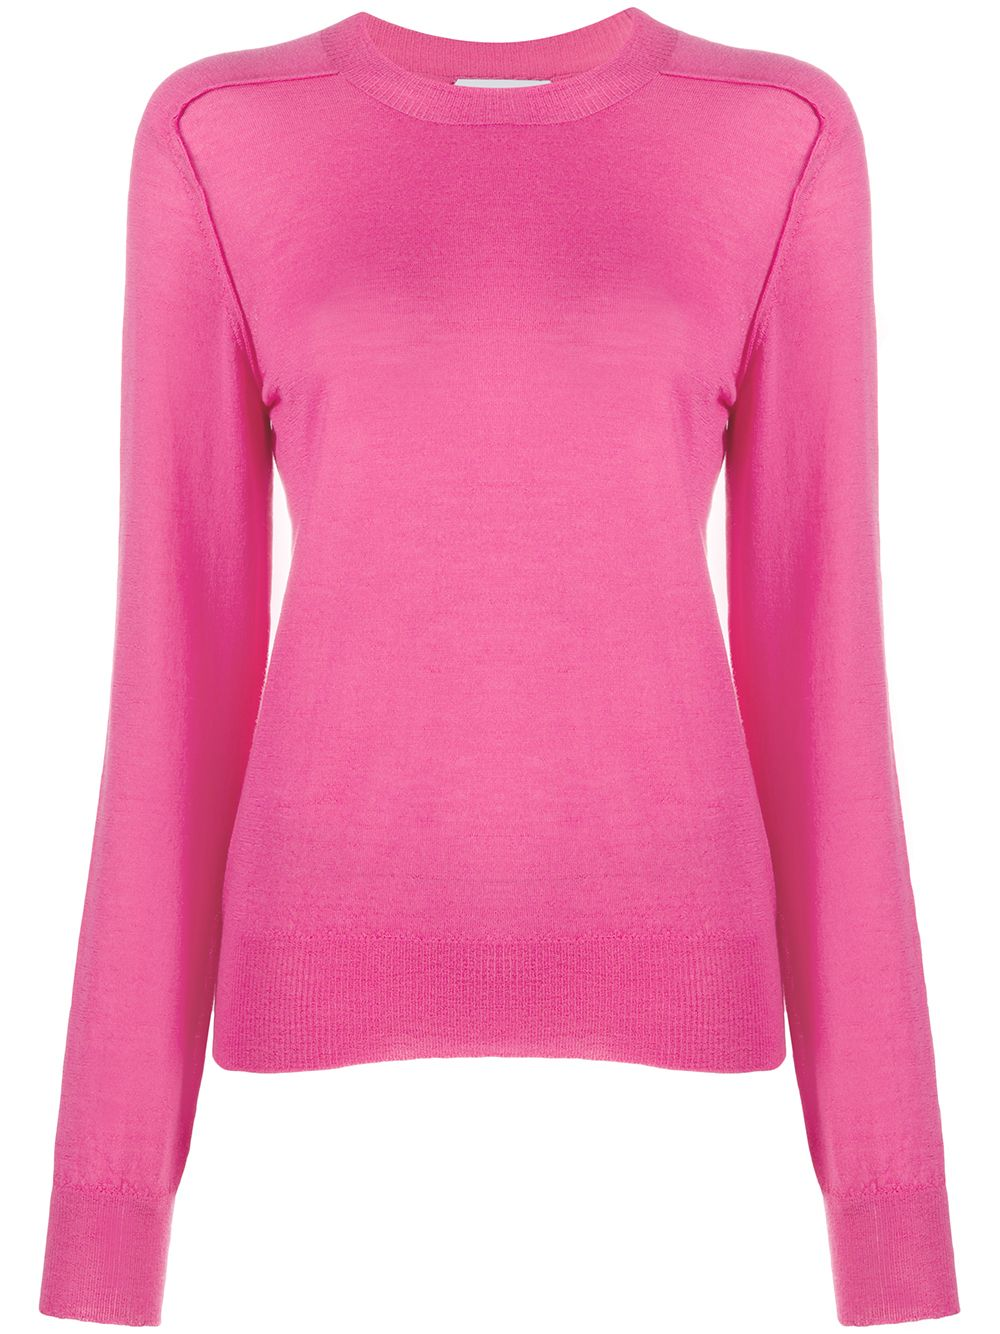 Cashmere Long-sleeve Knitted Top